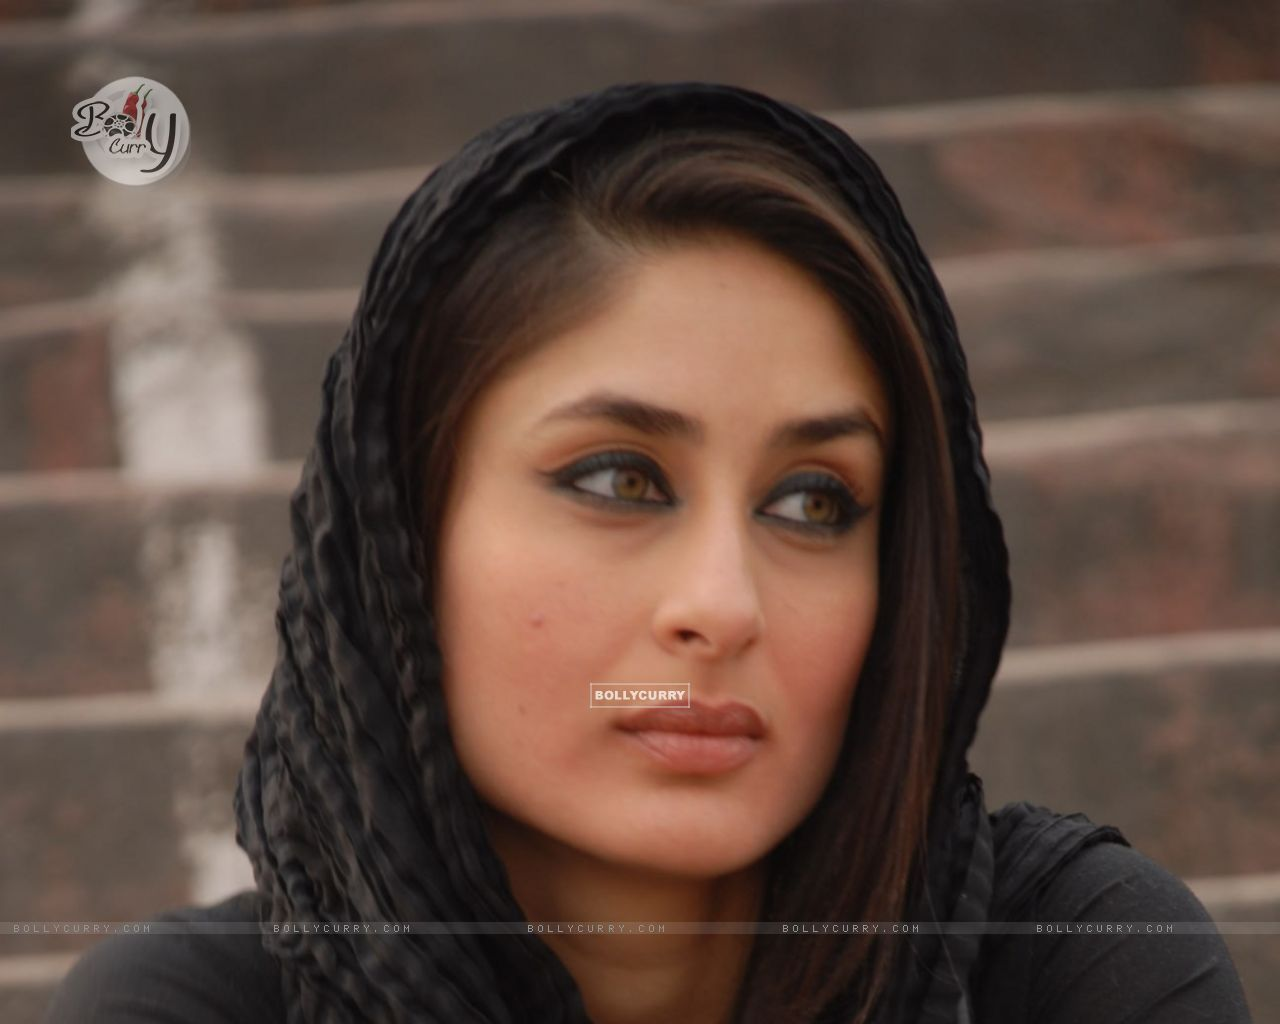 http://img.bollycurry.com/wallpapers/1280x1024/38948-kareena-kapoor-looking-gorgeous.jpg